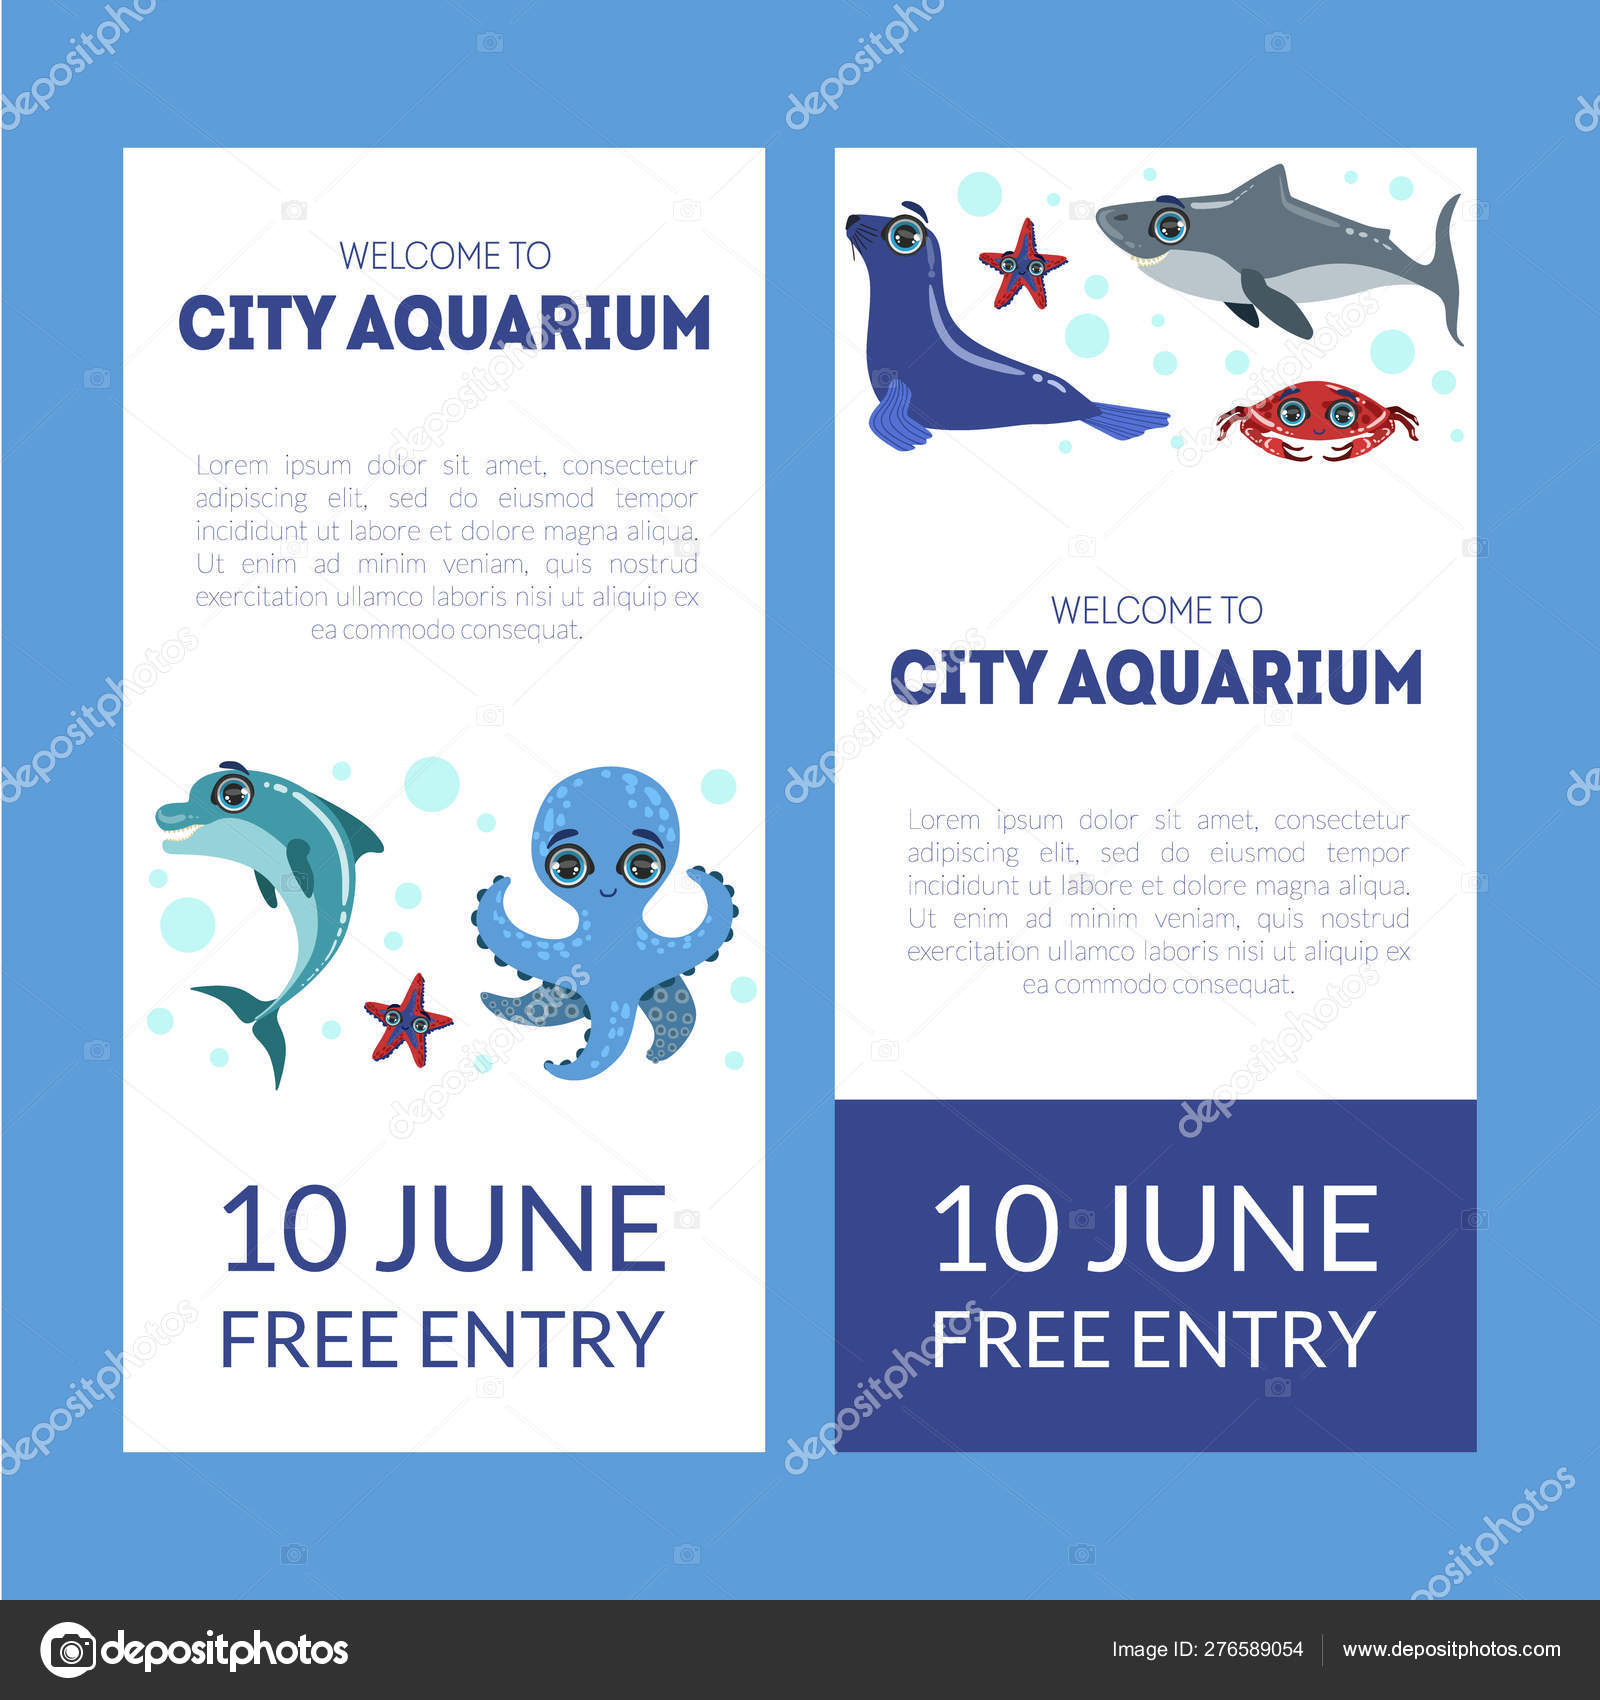 City Aquarium Exhibition Banner Templates Set Flyer Poster